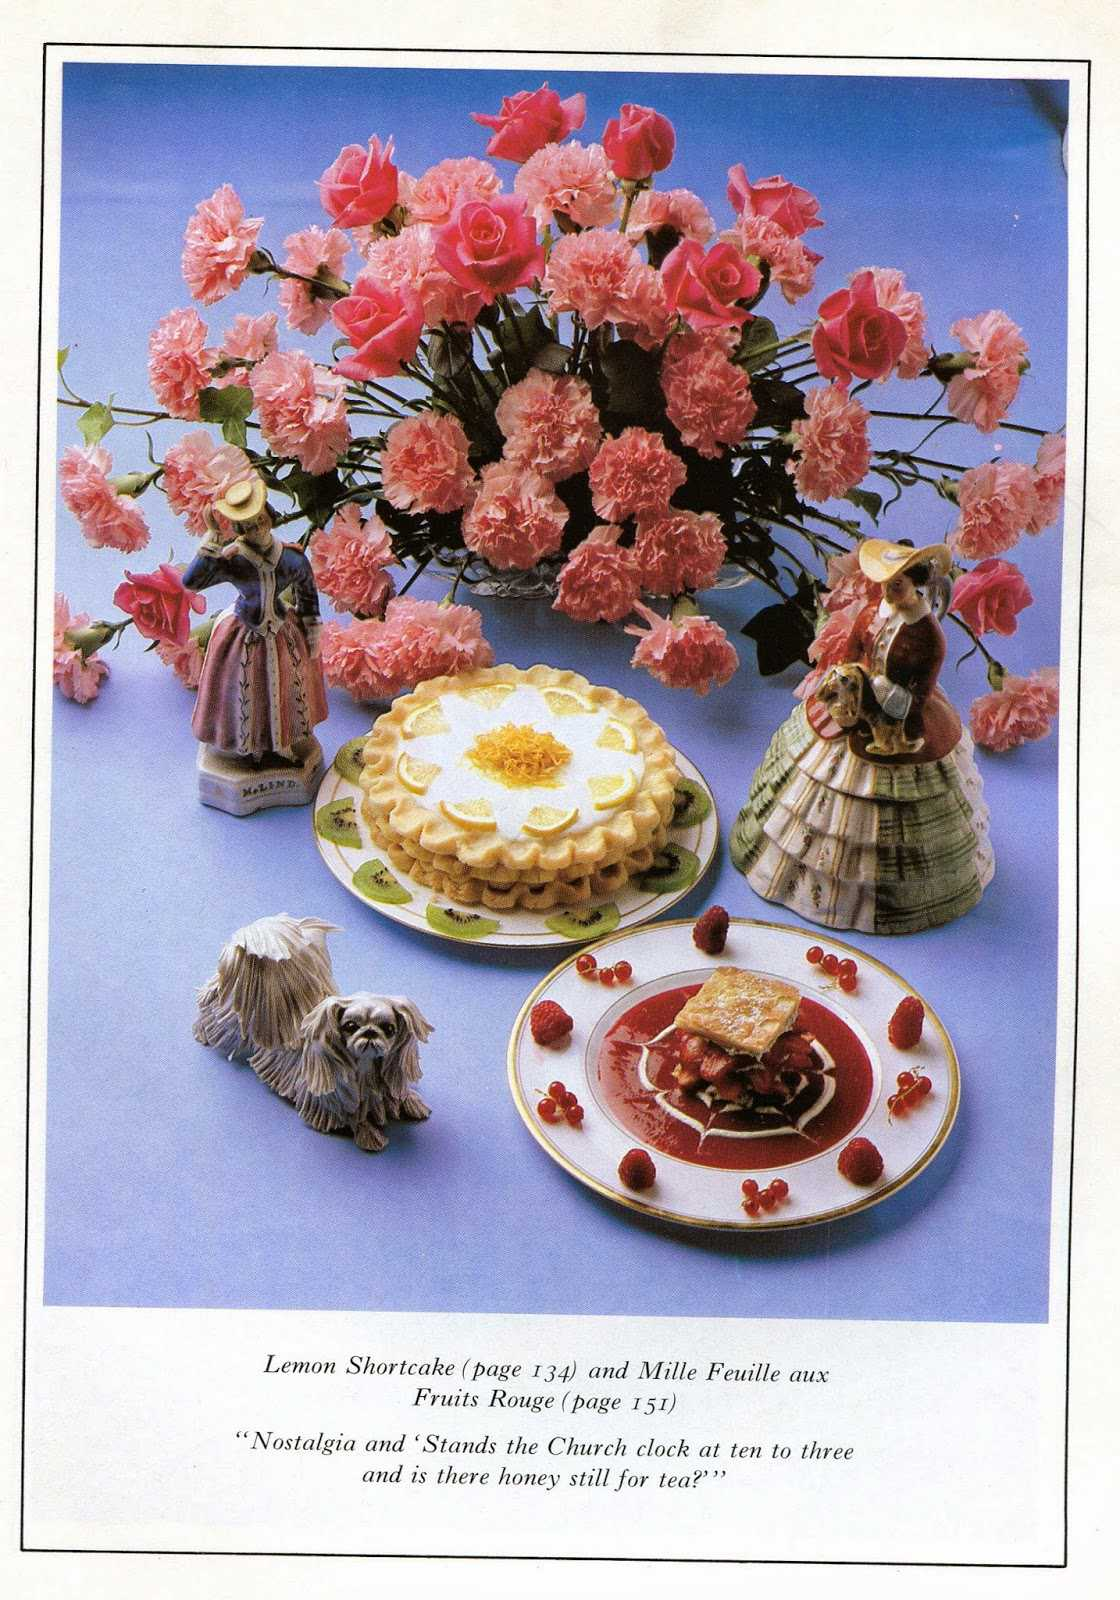 Romance of Food - The kitsch of the cookbooks from the 80s